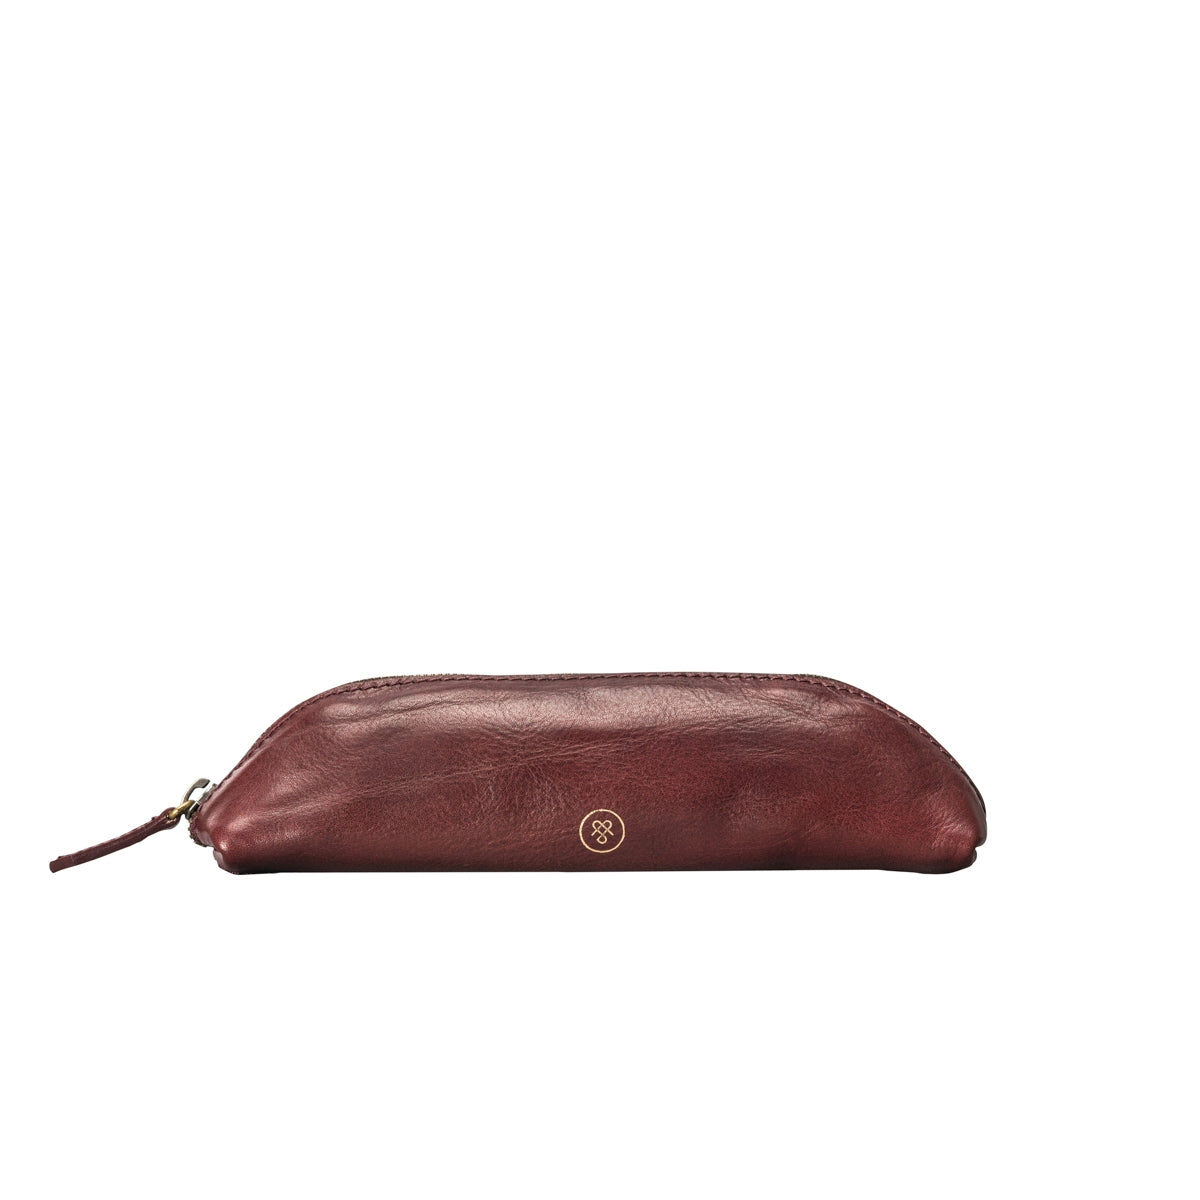 Image 1 of the 'Lorena' Leather Makeup Brush Case